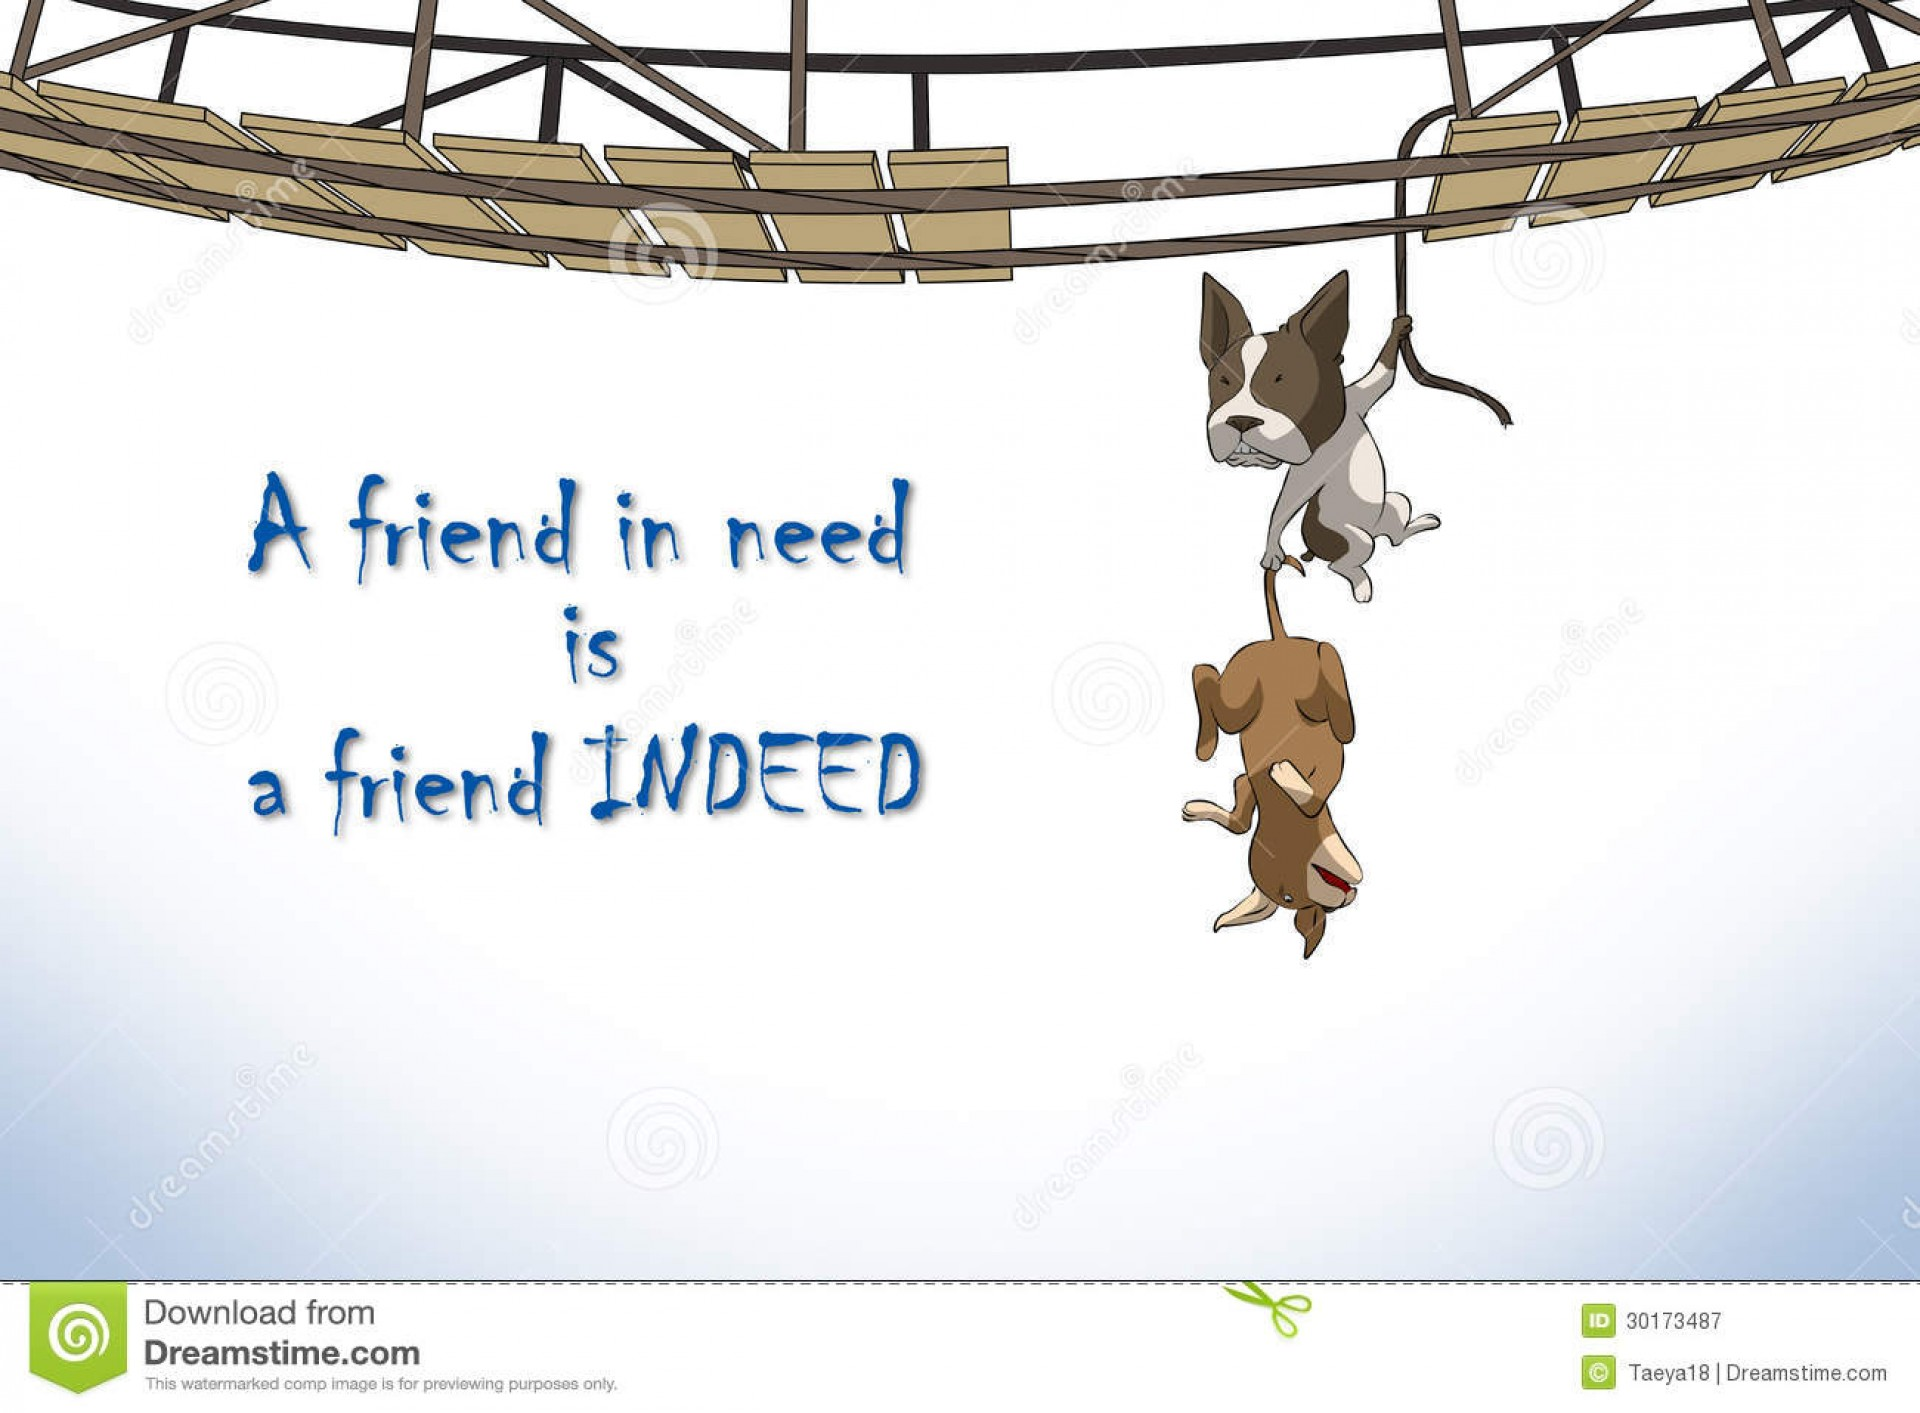 007 Essay Example About Helping Friend In Need Relationship Friends Indeed Singular A Narrative Is 1920